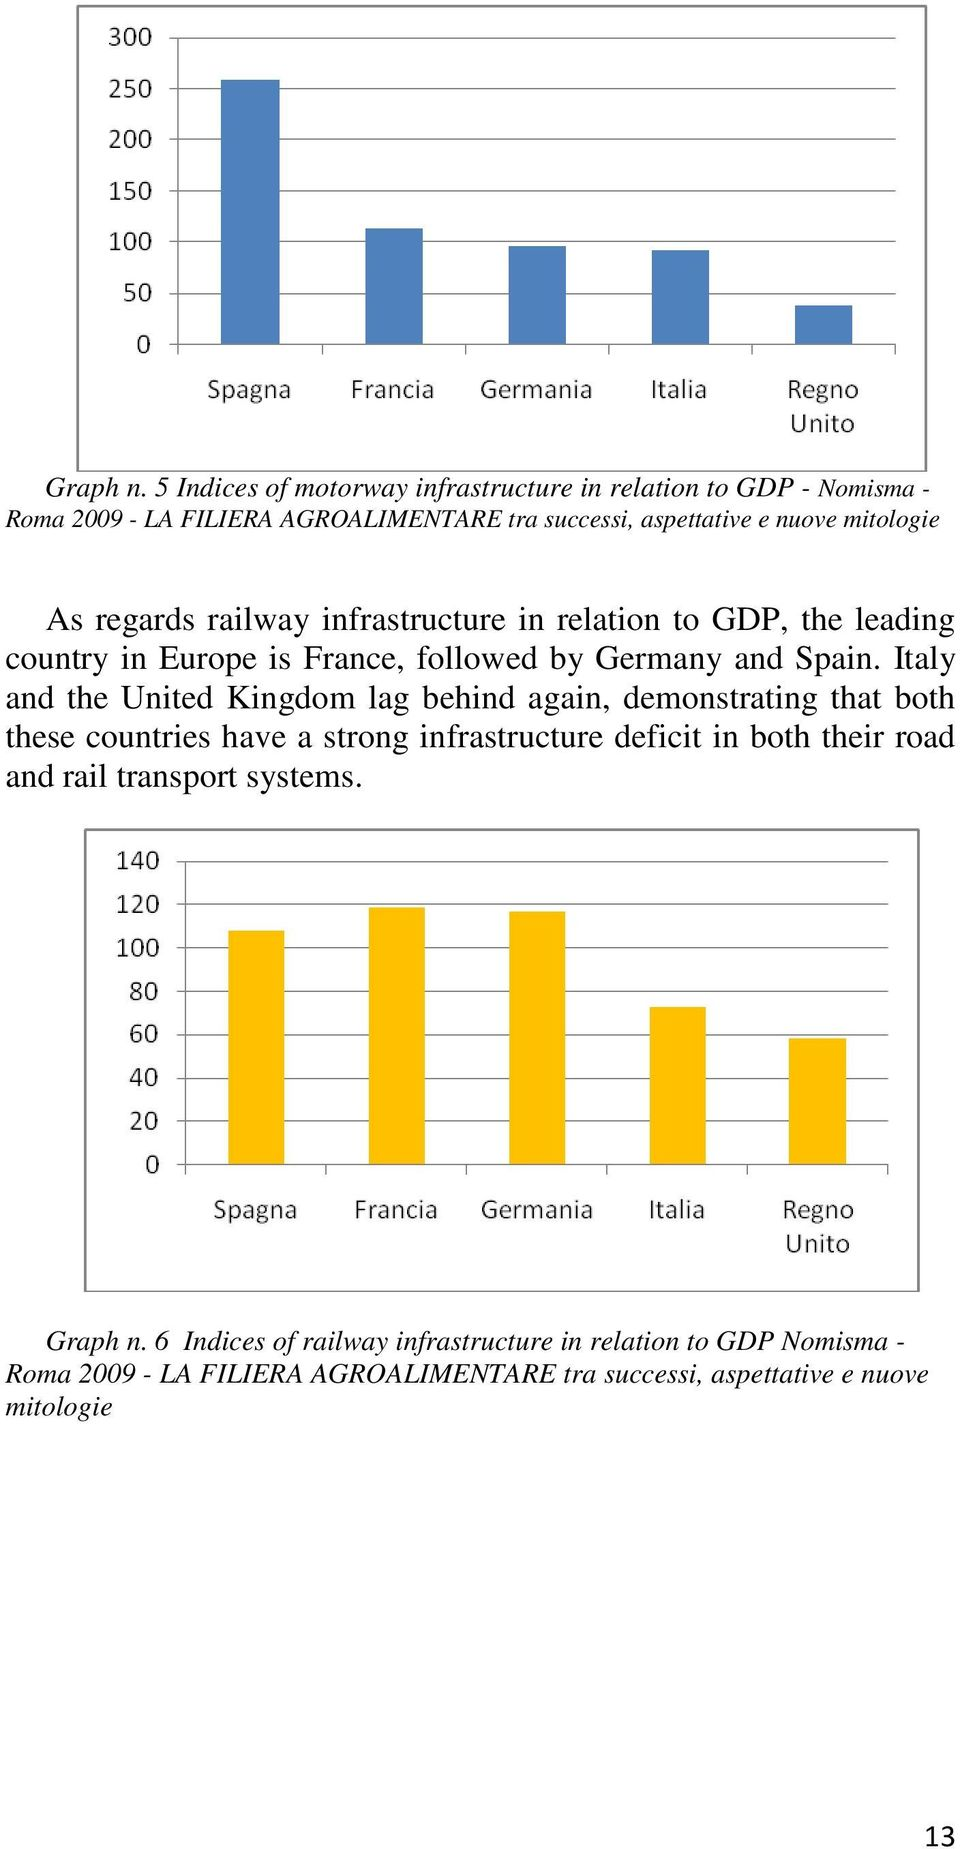 regards railway infrastructure in relation to GDP, the leading country in Europe is France, followed by Germany and Spain.